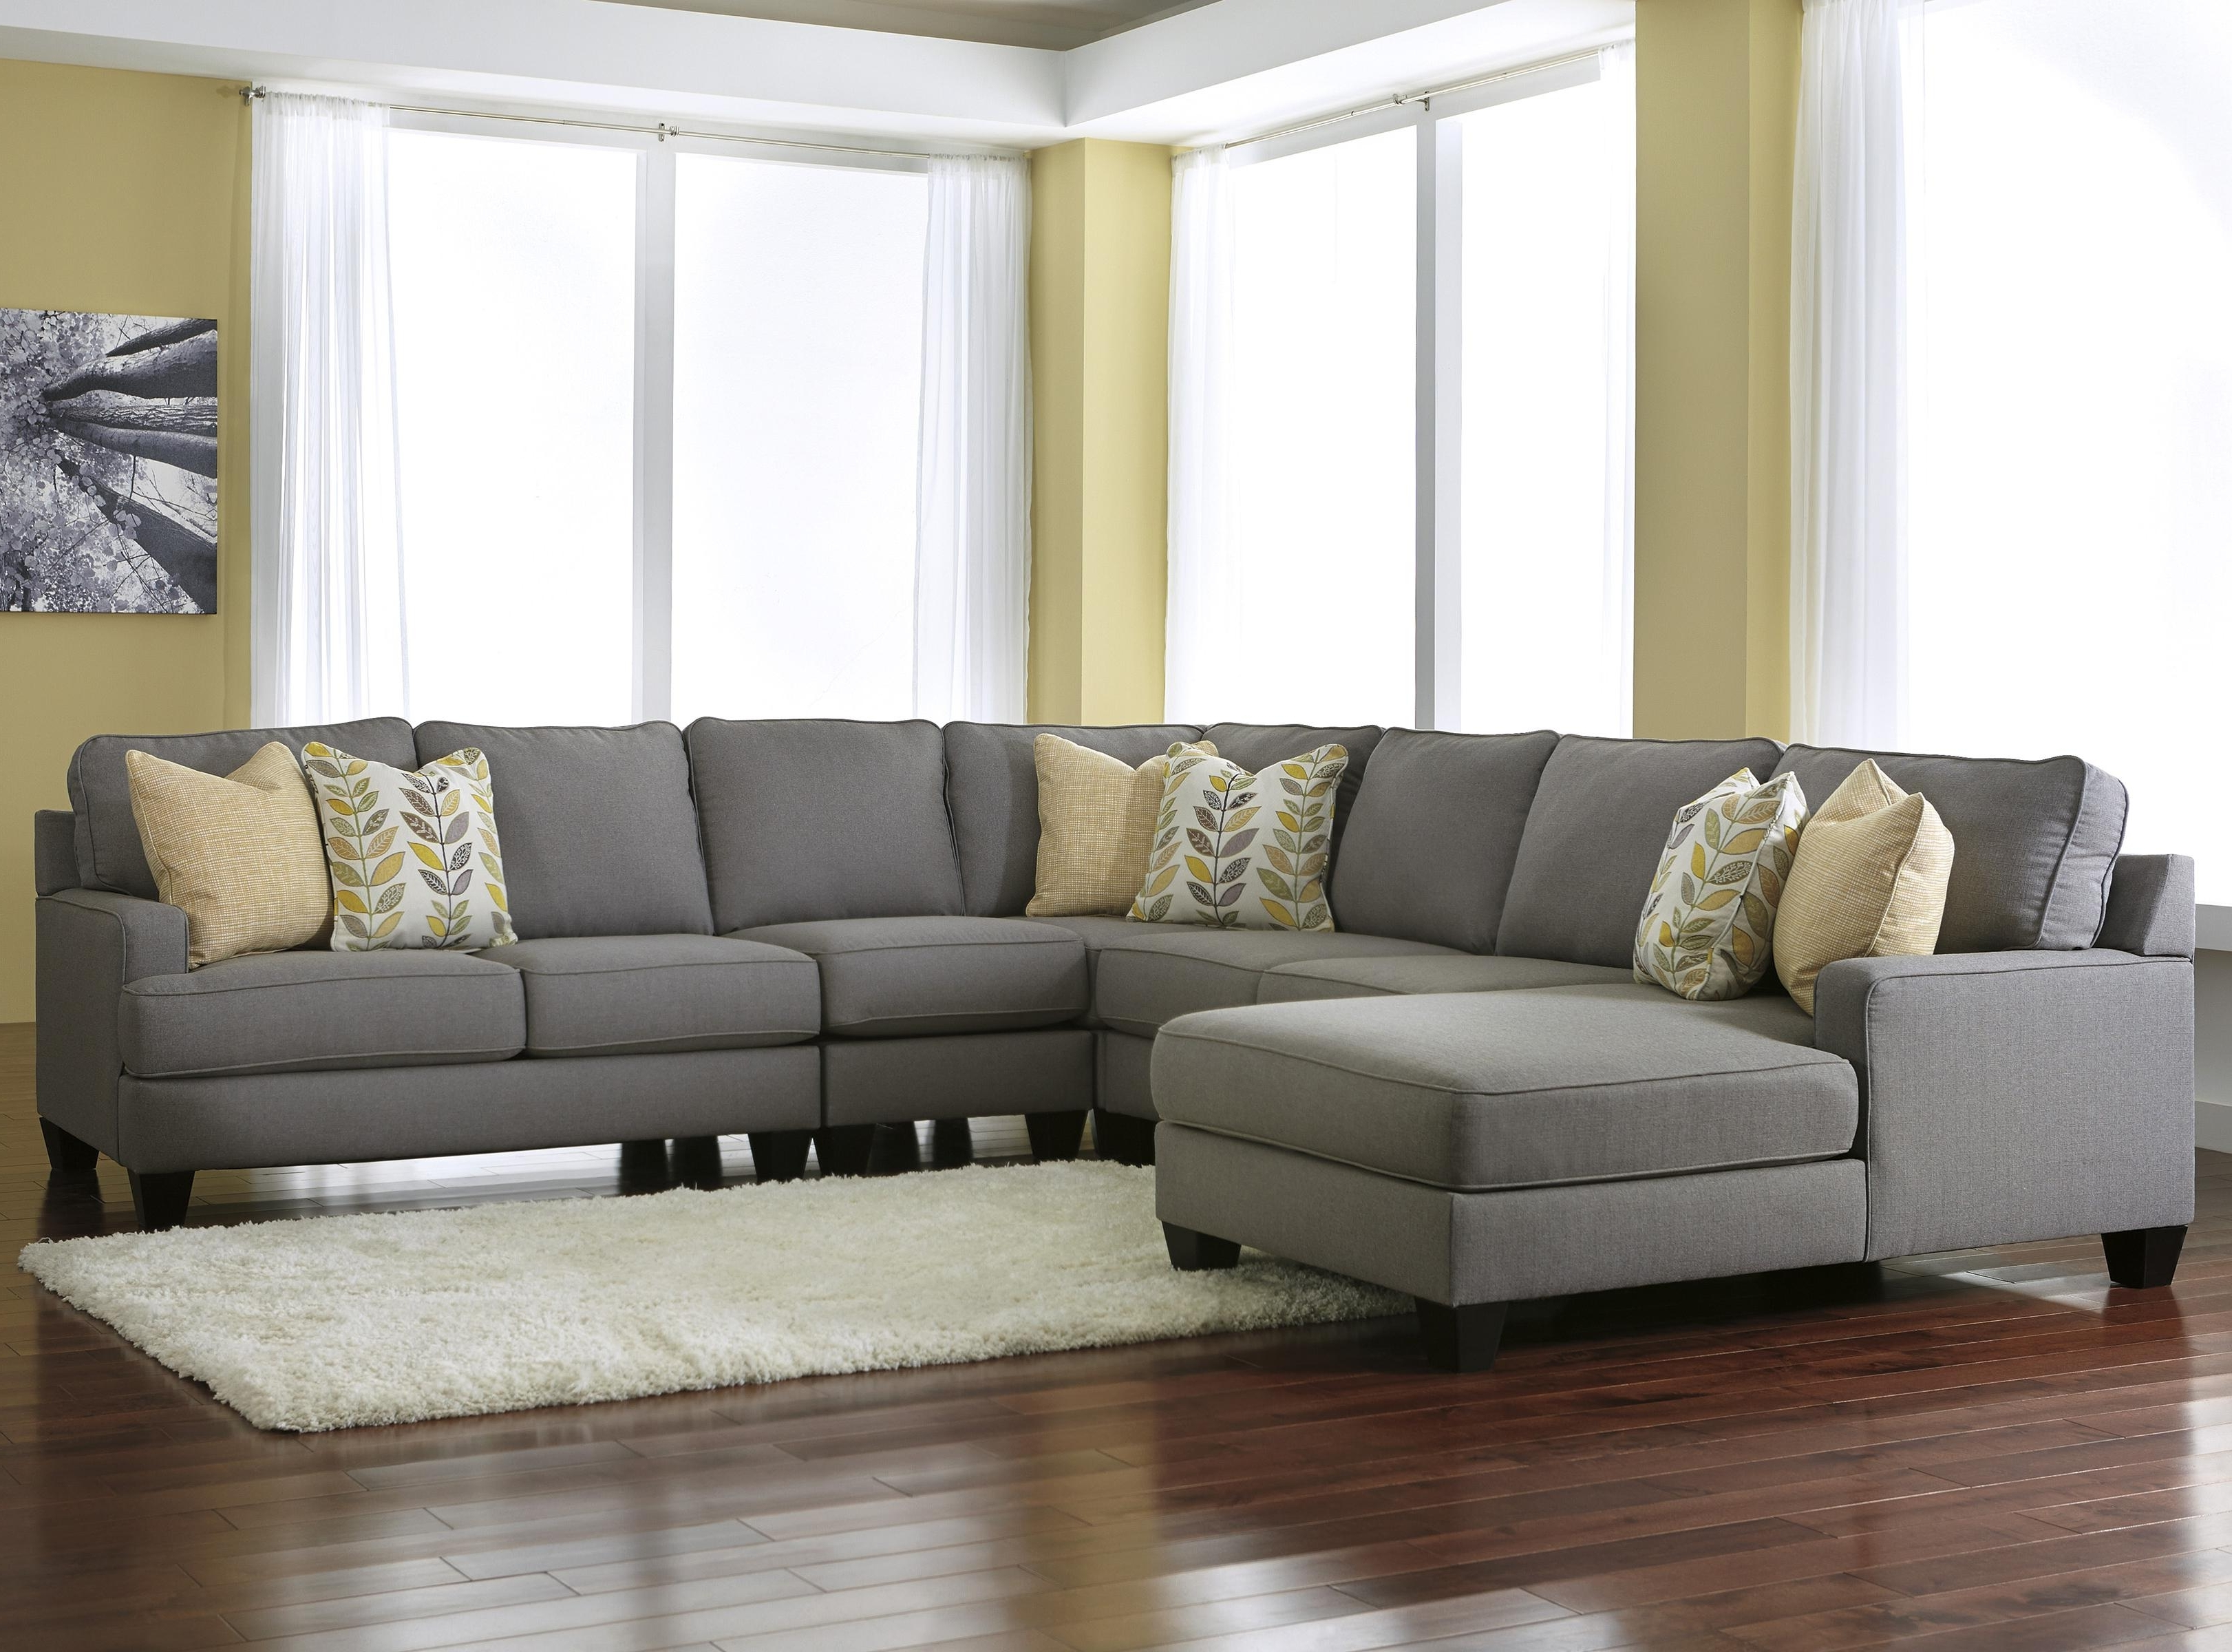 Best And Newest Signature Designashley Chamberly – Alloy Modern 5 Piece Within Green Bay Wi Sectional Sofas (View 4 of 15)